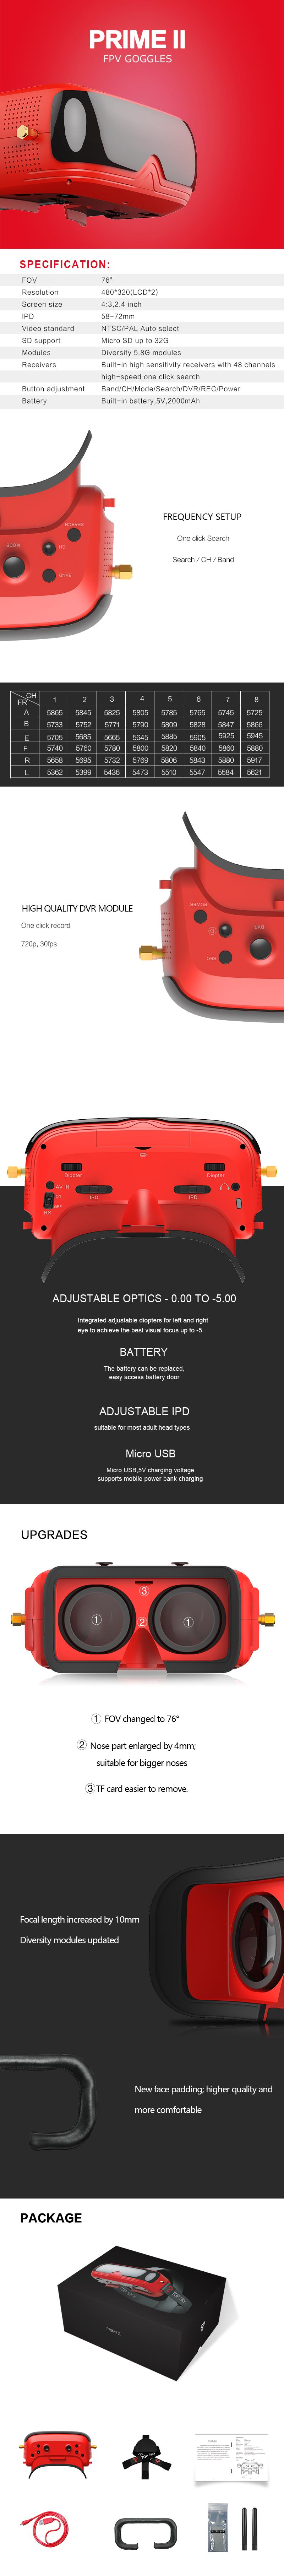 TOPSKY PRIME II FPV Goggles 480*320 Display 58-72mm IPD 5.8Ghz 48CH Diversity RF with DVR Built-in Replaceable 5V 2000mAh Battery for FPV Racing Drone